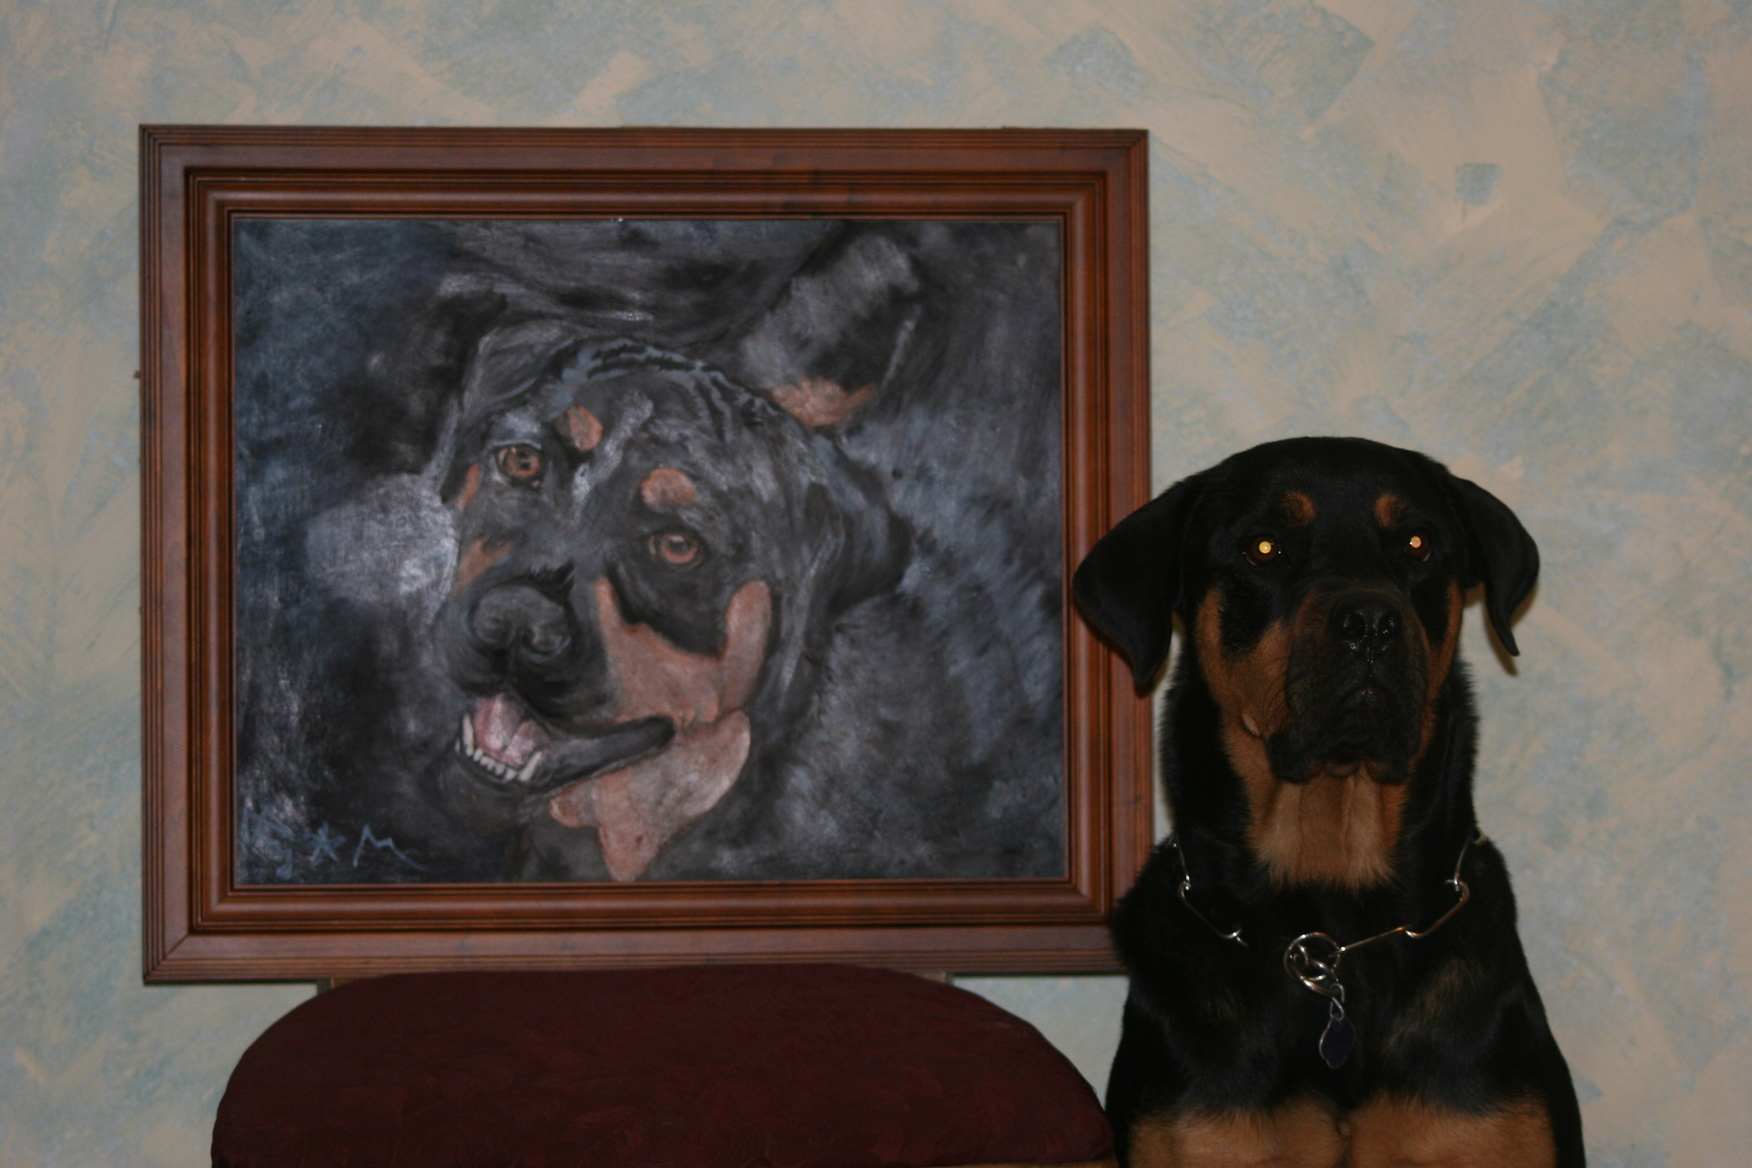 Roxy and Her Portrait (May 2007)